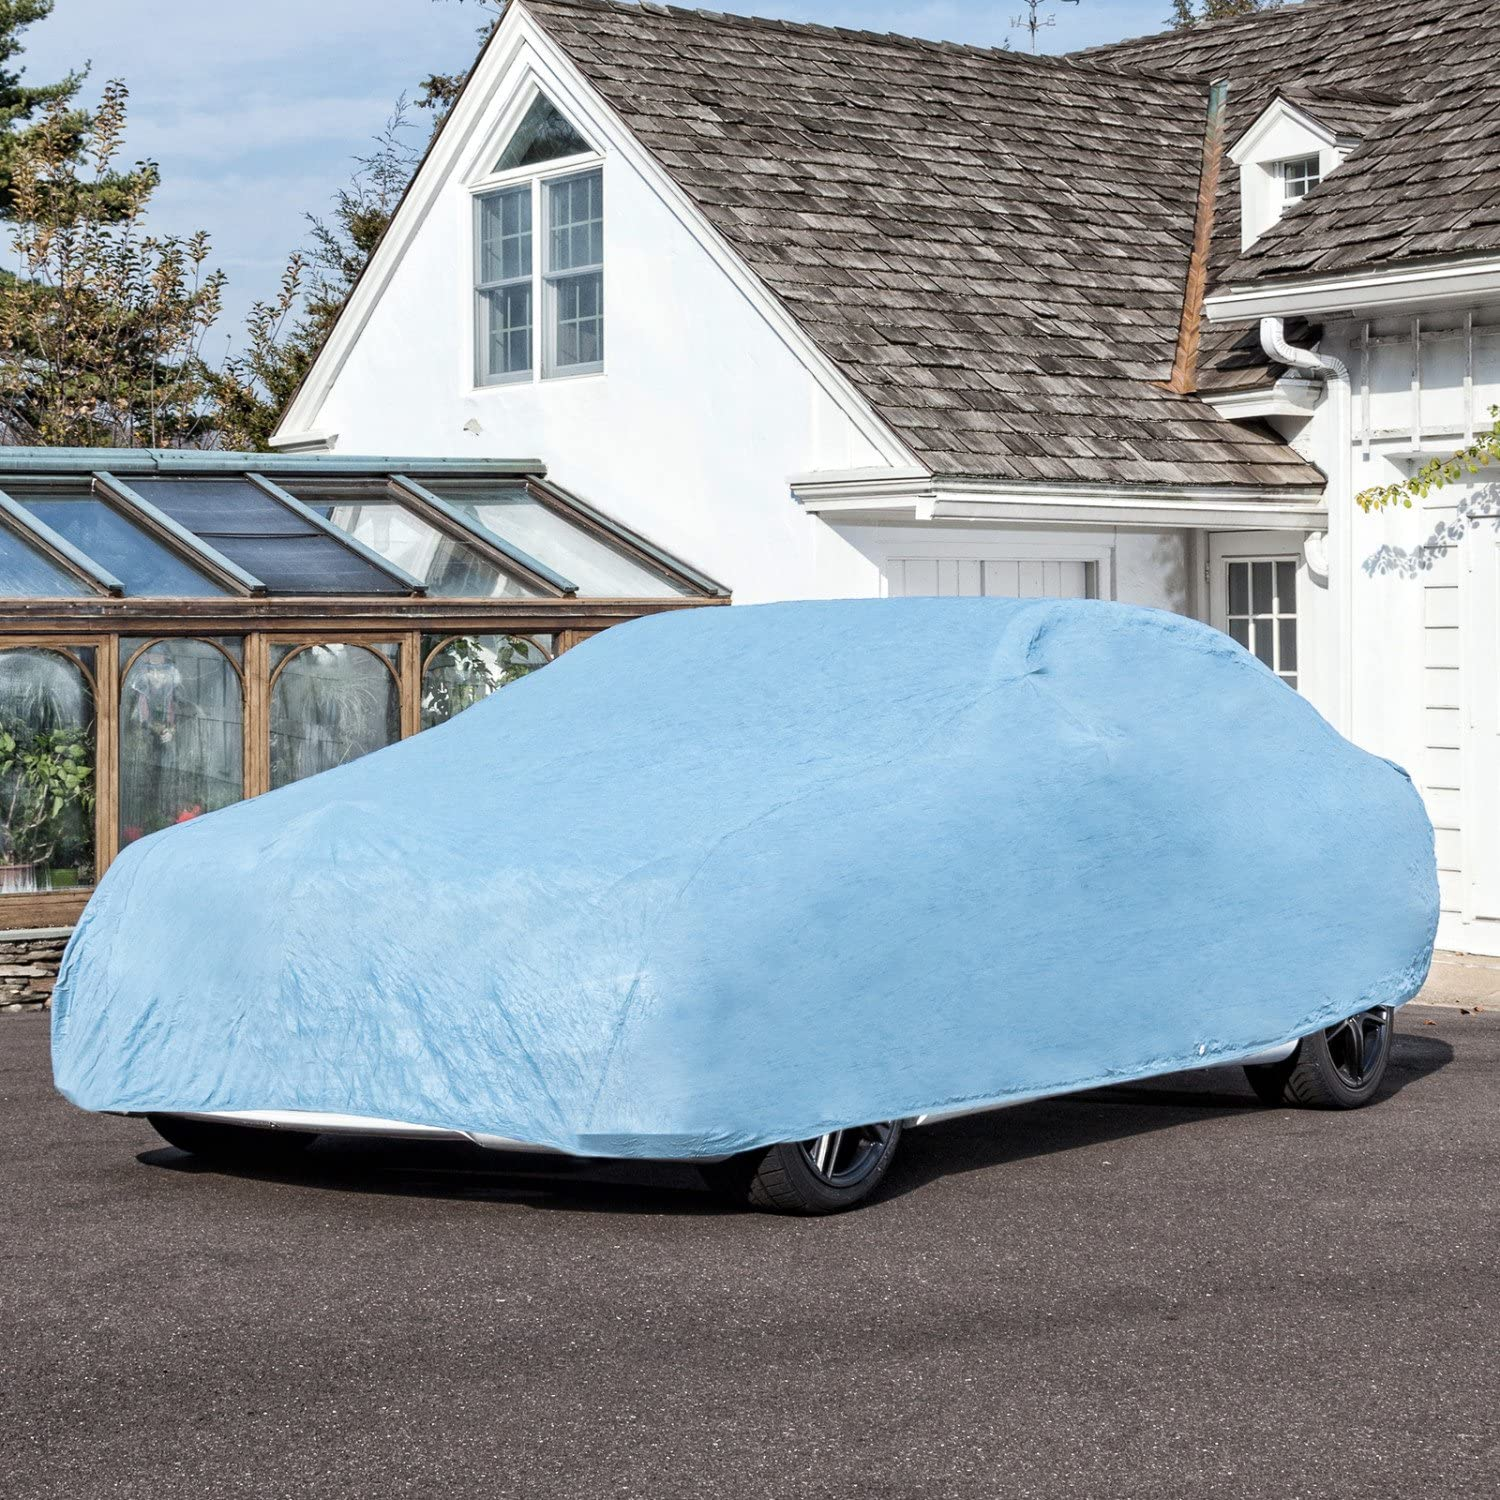 DHB-1 Polypropylene, Blue Budge Duro Hatchback Car Cover Fits Hatchback Cars up to 161 inches